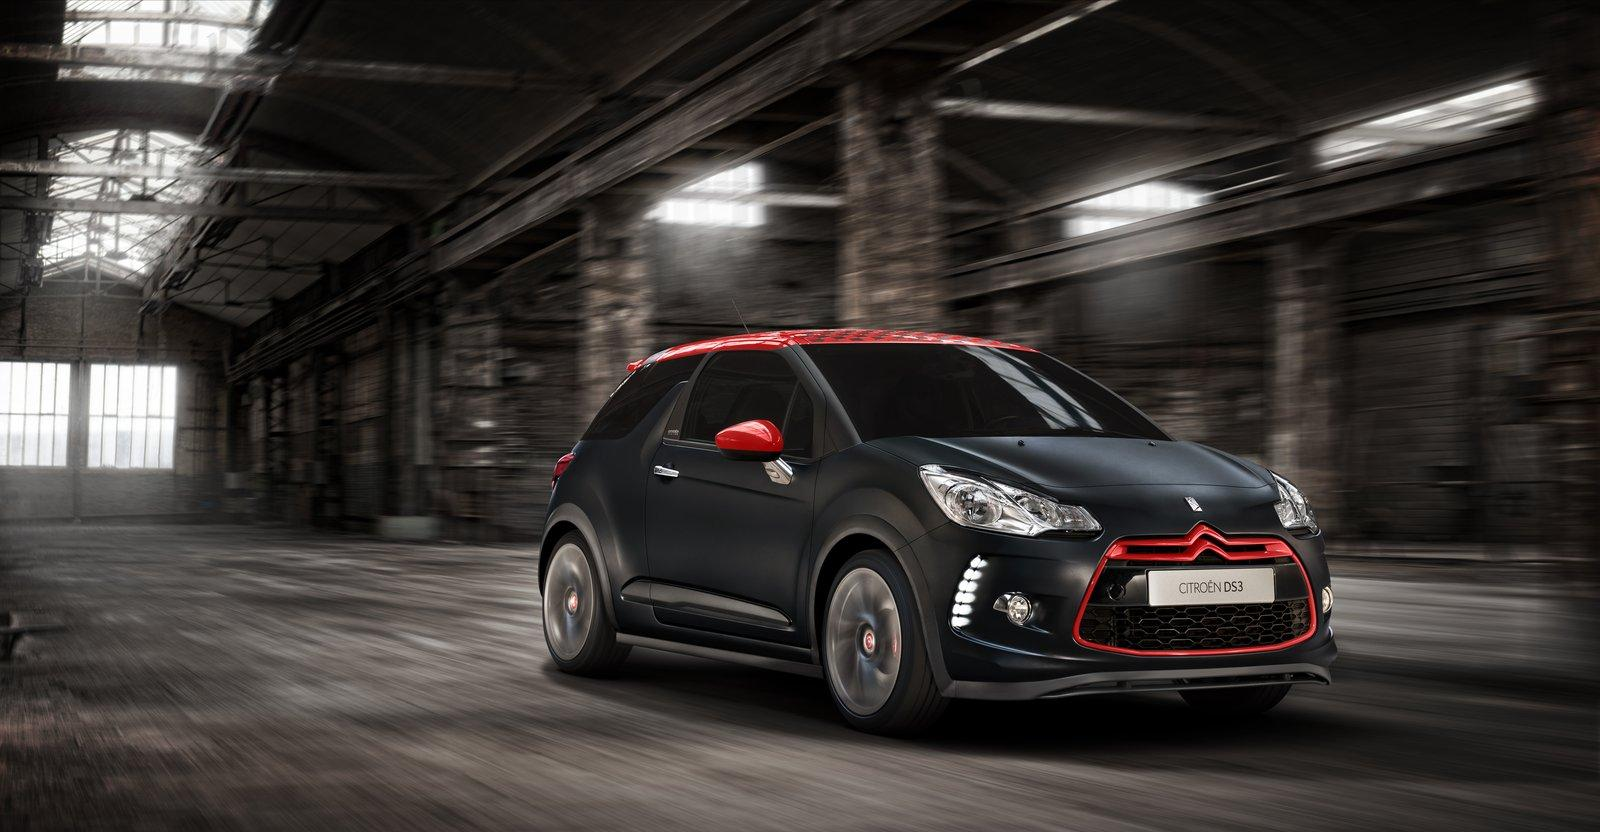 citroen ds3 racing sebastien loeb edition debuting in geneva autoevolution. Black Bedroom Furniture Sets. Home Design Ideas